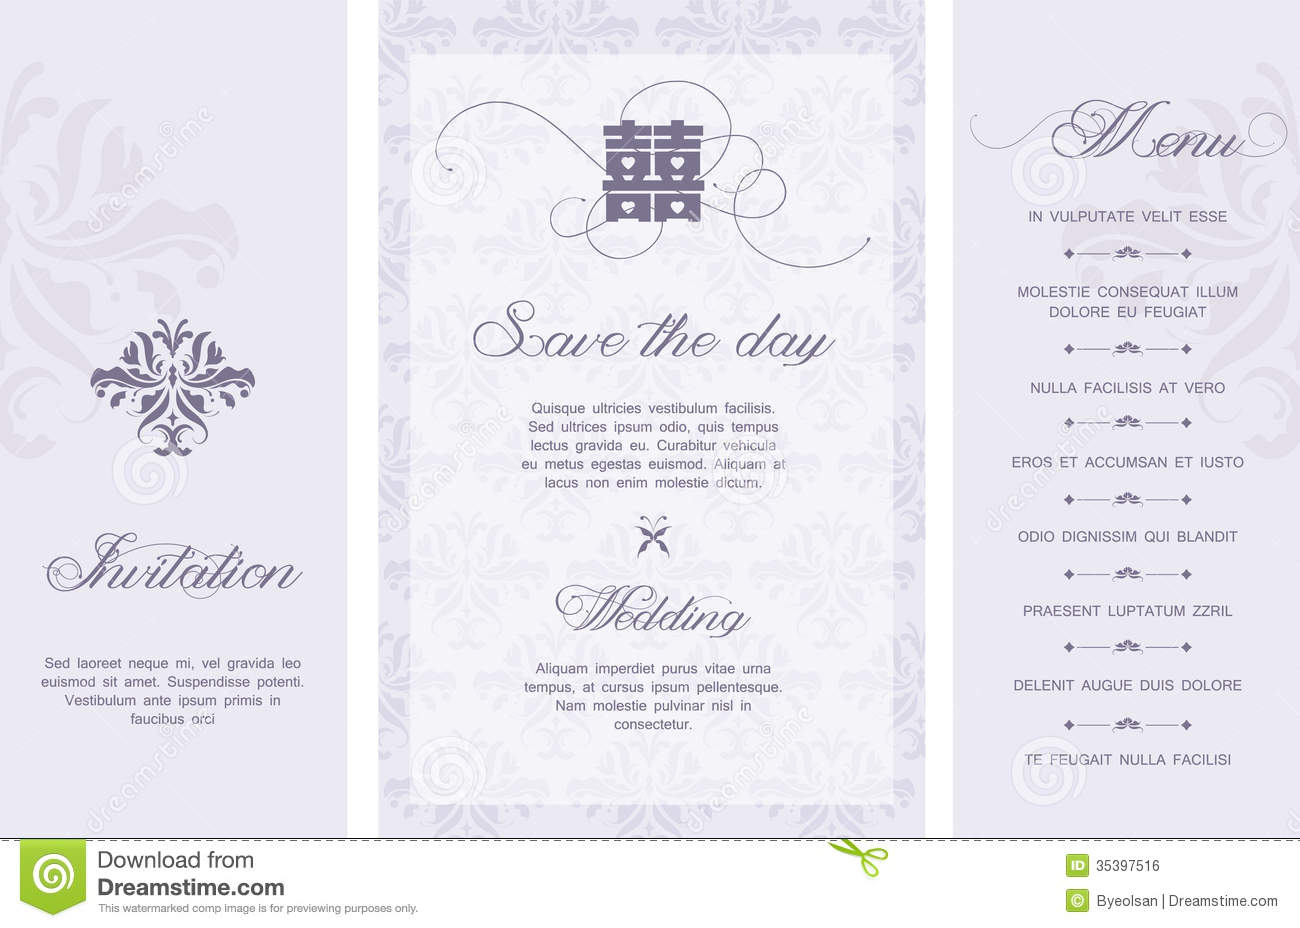 Wedding Invitation Stock Vector Illustration Of Card - Wedding invitation templates: free templates for wedding invitations